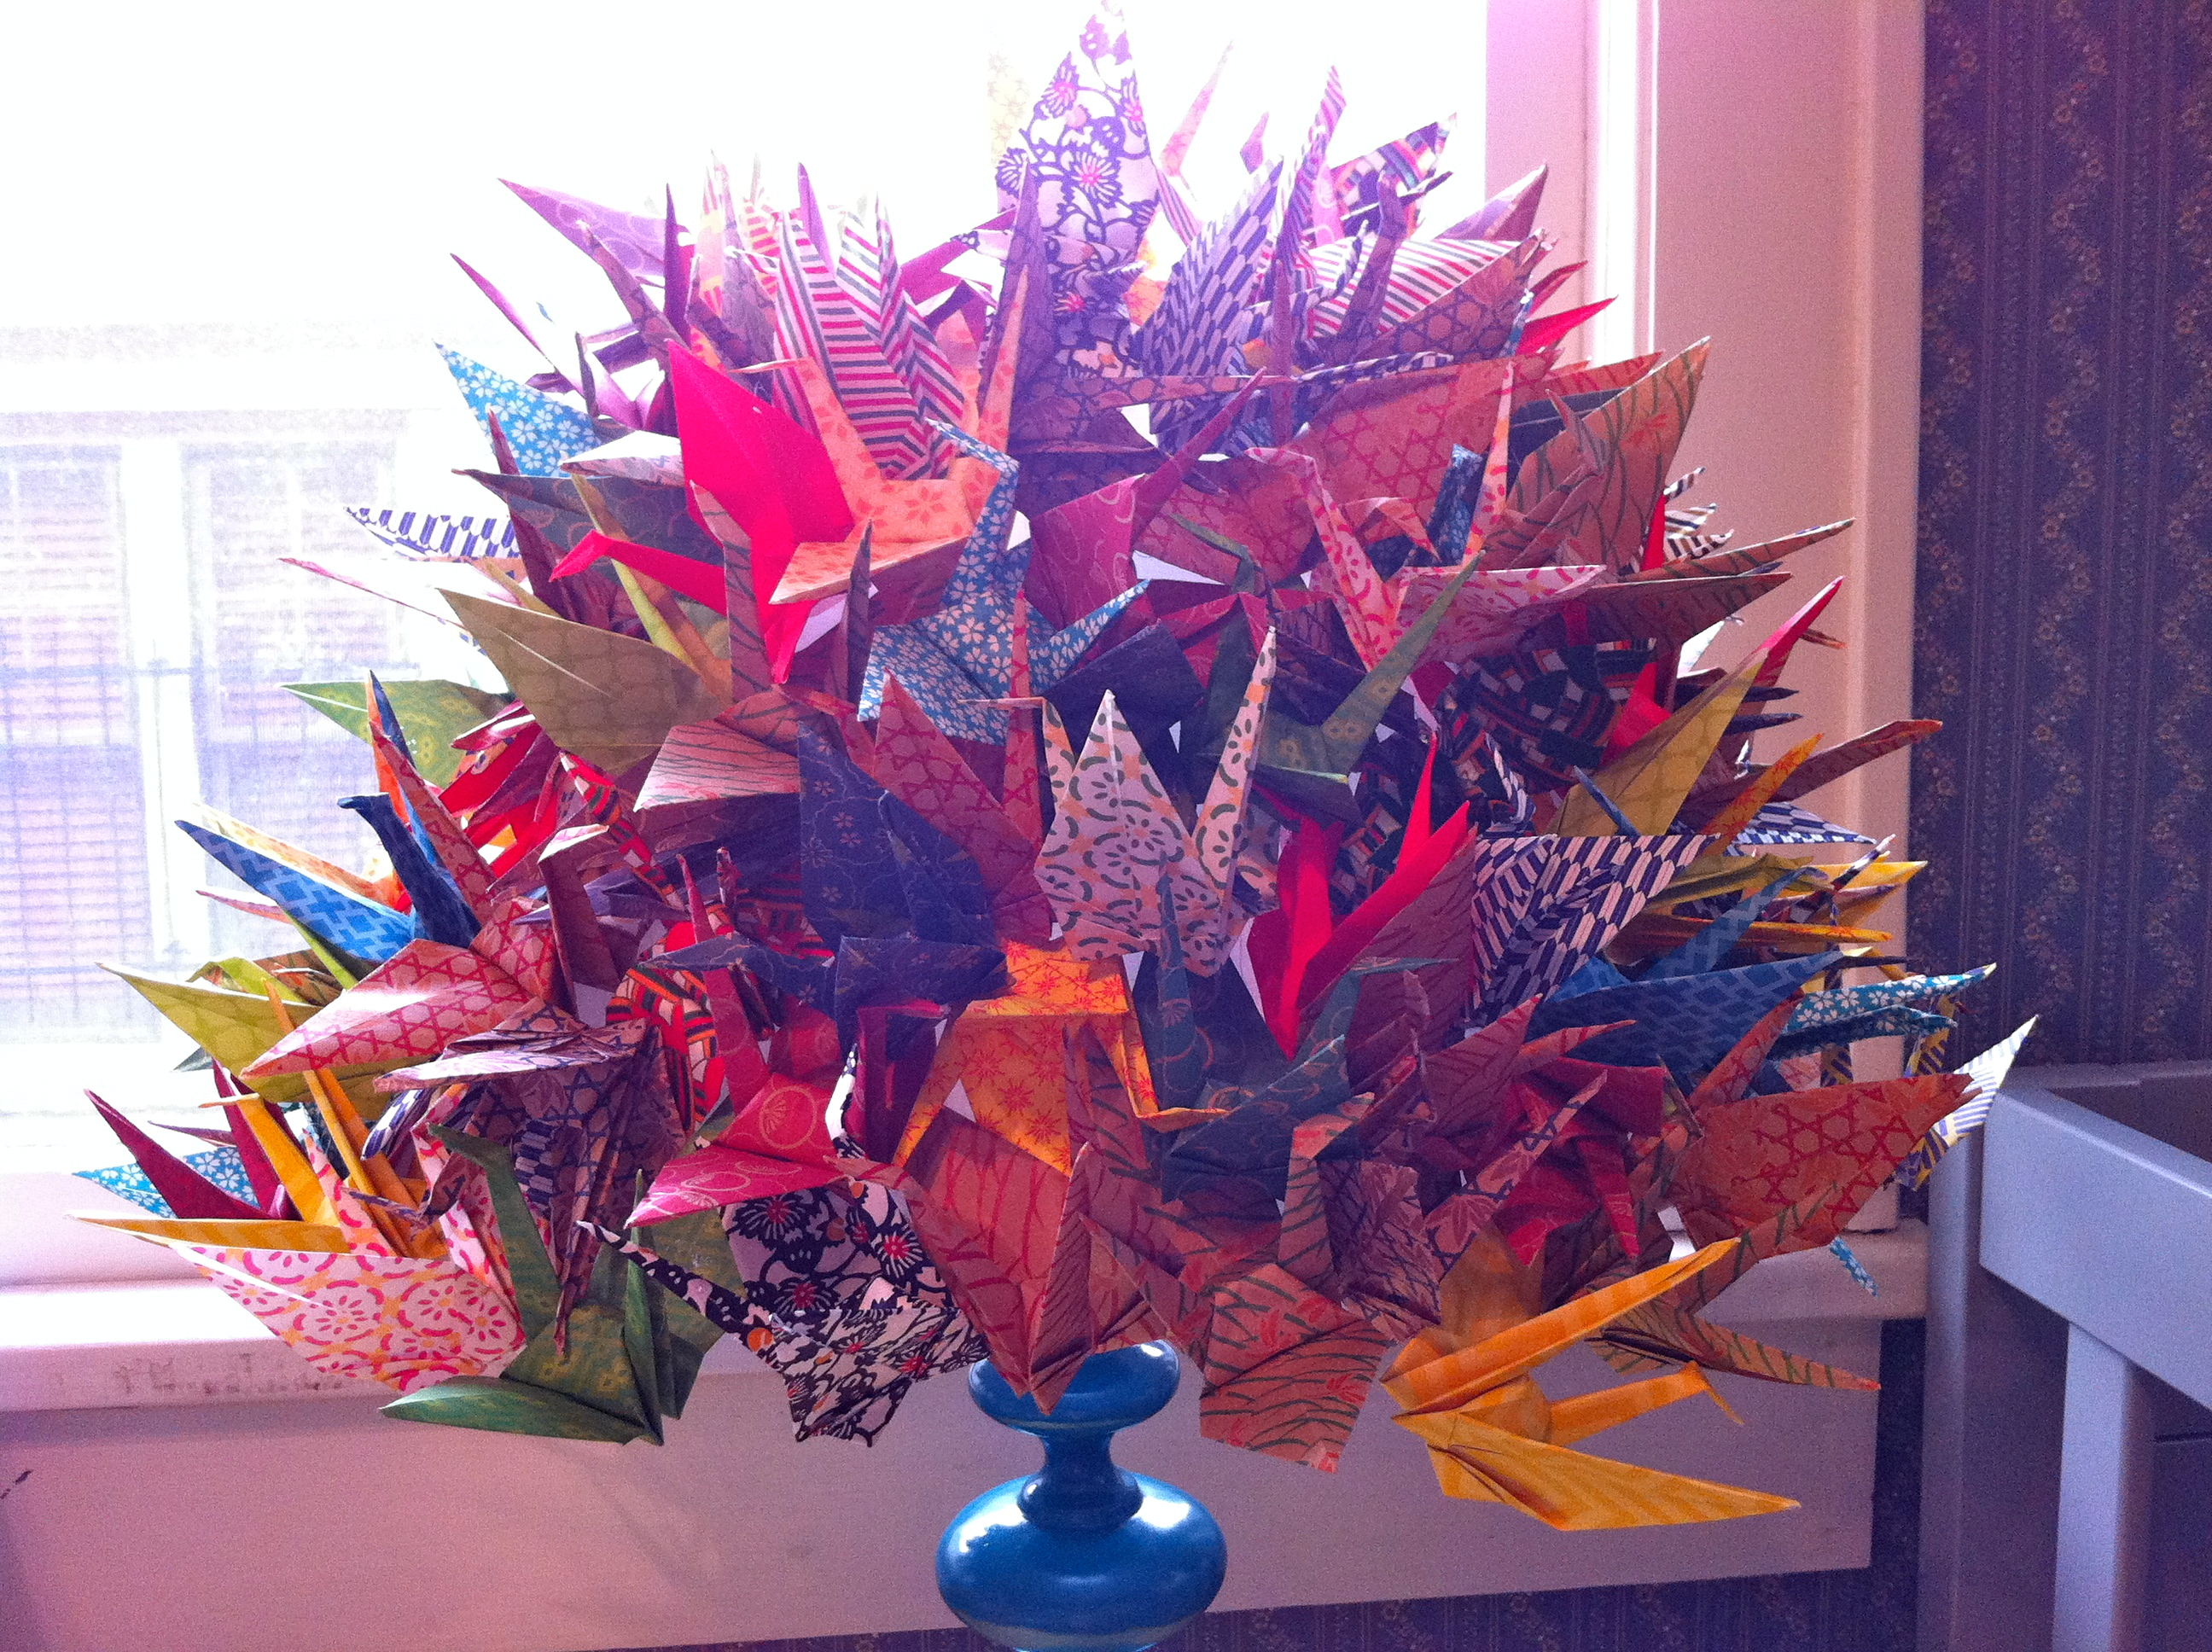 paper cranes for sale Thousand origami cranes (千羽鶴, senbazuru) is a group of one thousand  origami paper cranes (折鶴, orizuru) held together by strings an ancient  japanese.